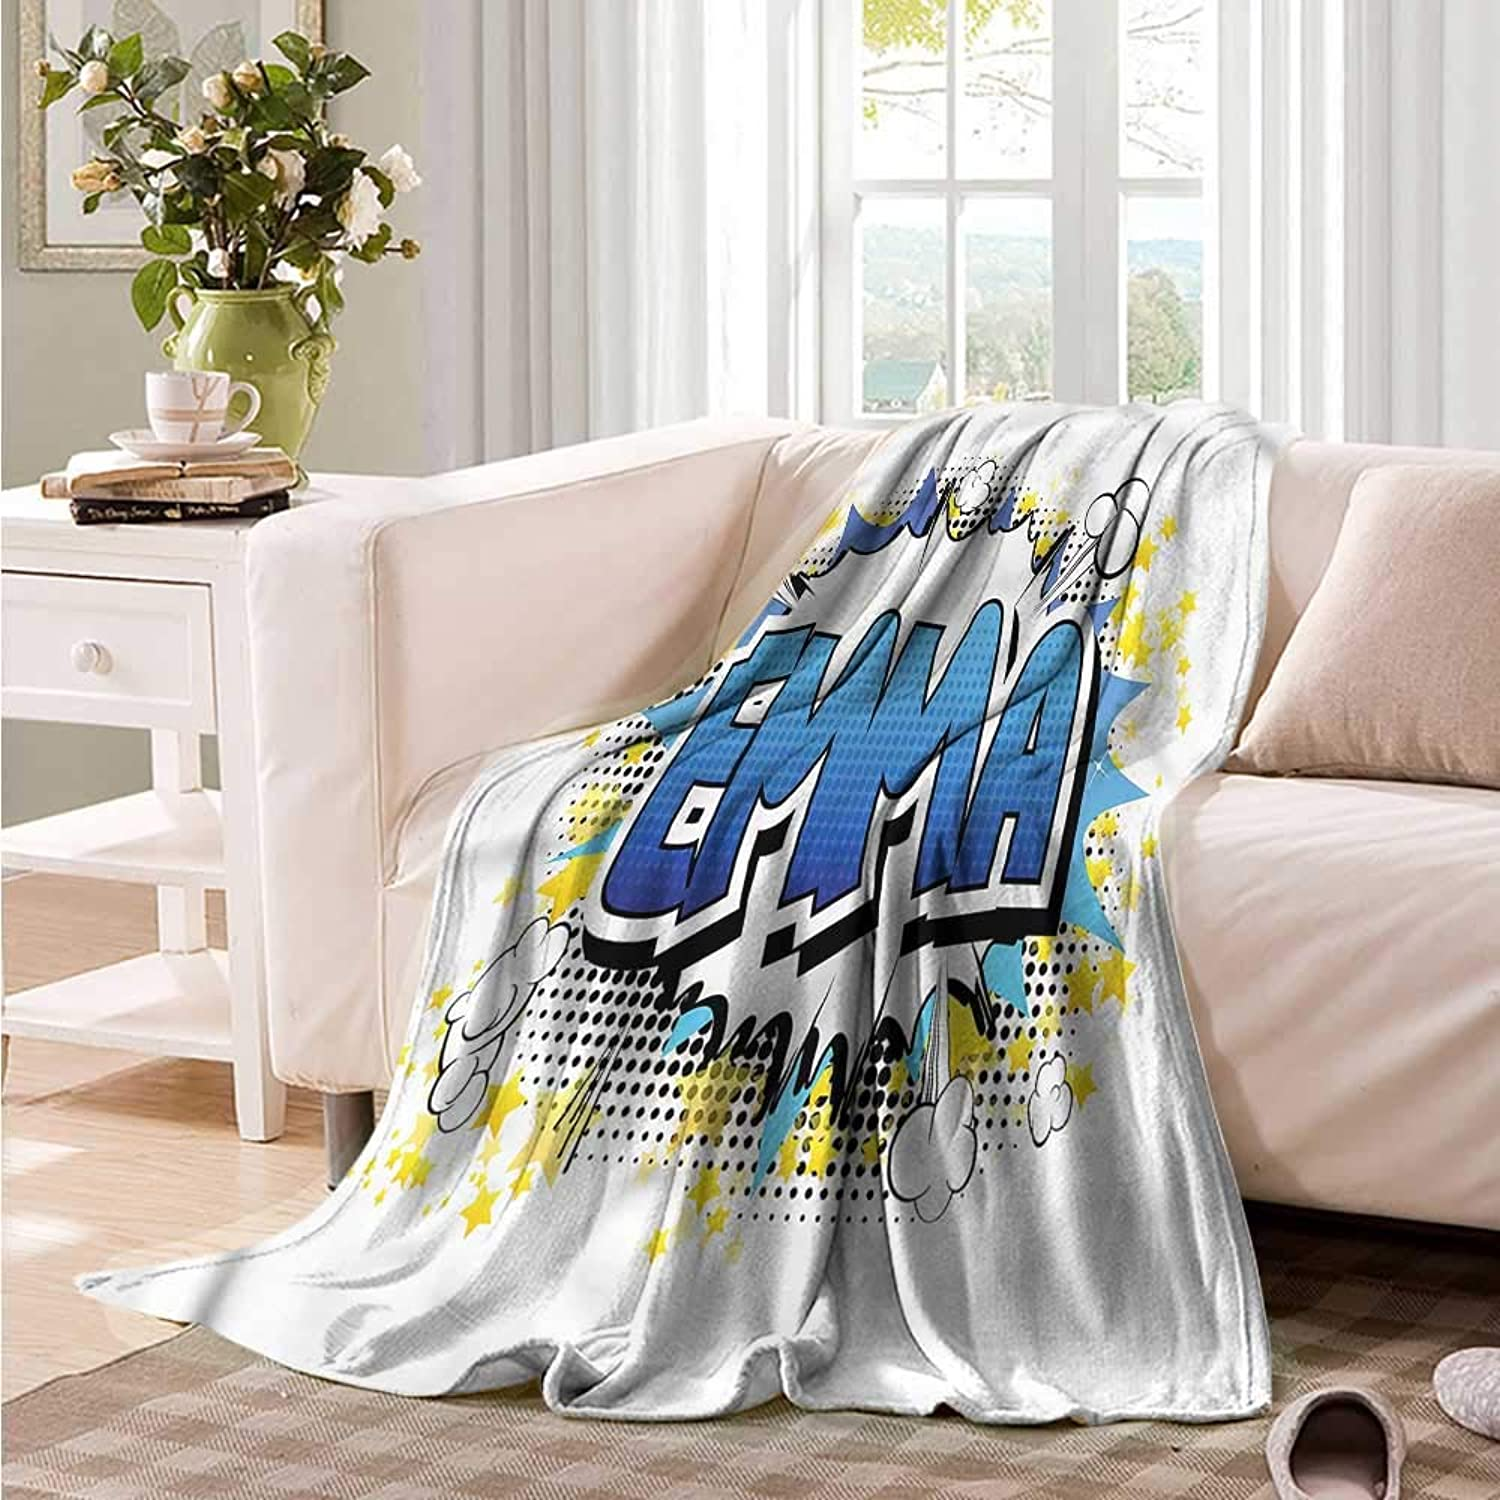 Oncegod Super Soft Blanket Emma Youthful Teen Comic Book Camping Throw,Office wrap 60  W x 51  L